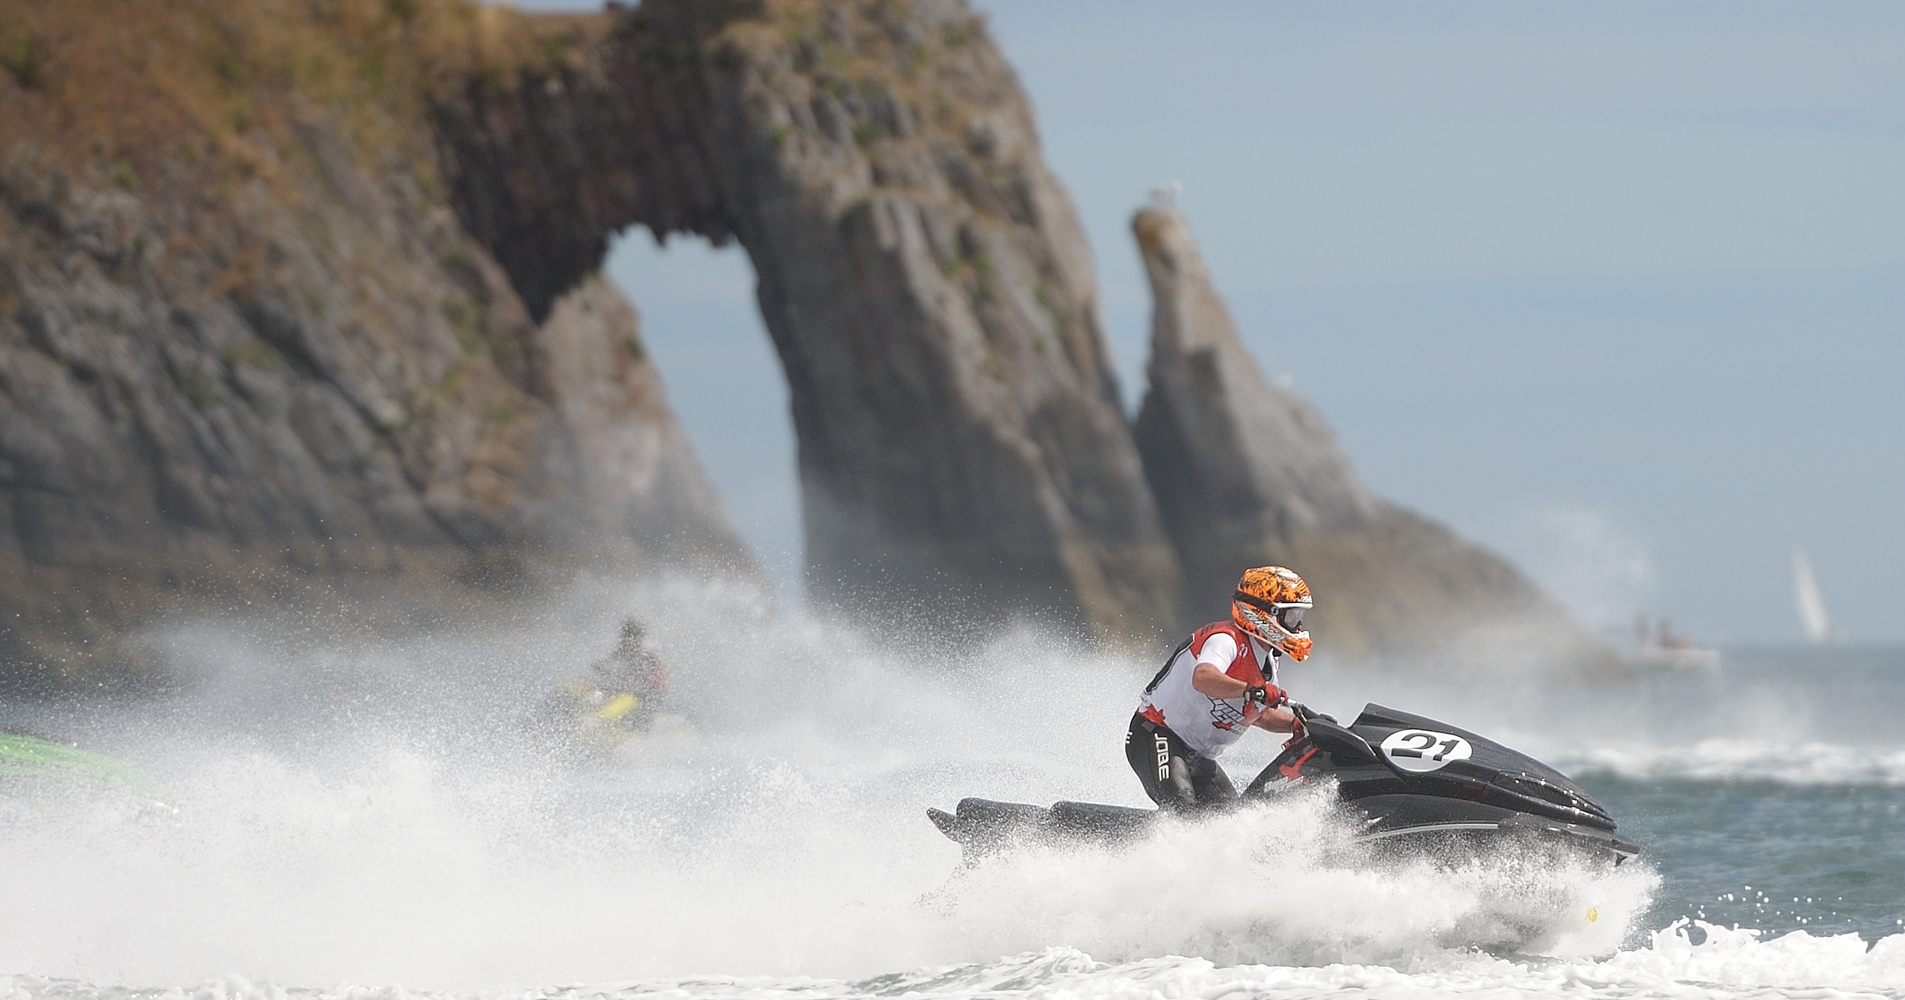 Torquay hasn't hosted AquaX racing since 2014 but is a welcome addition to the 2017 calendar